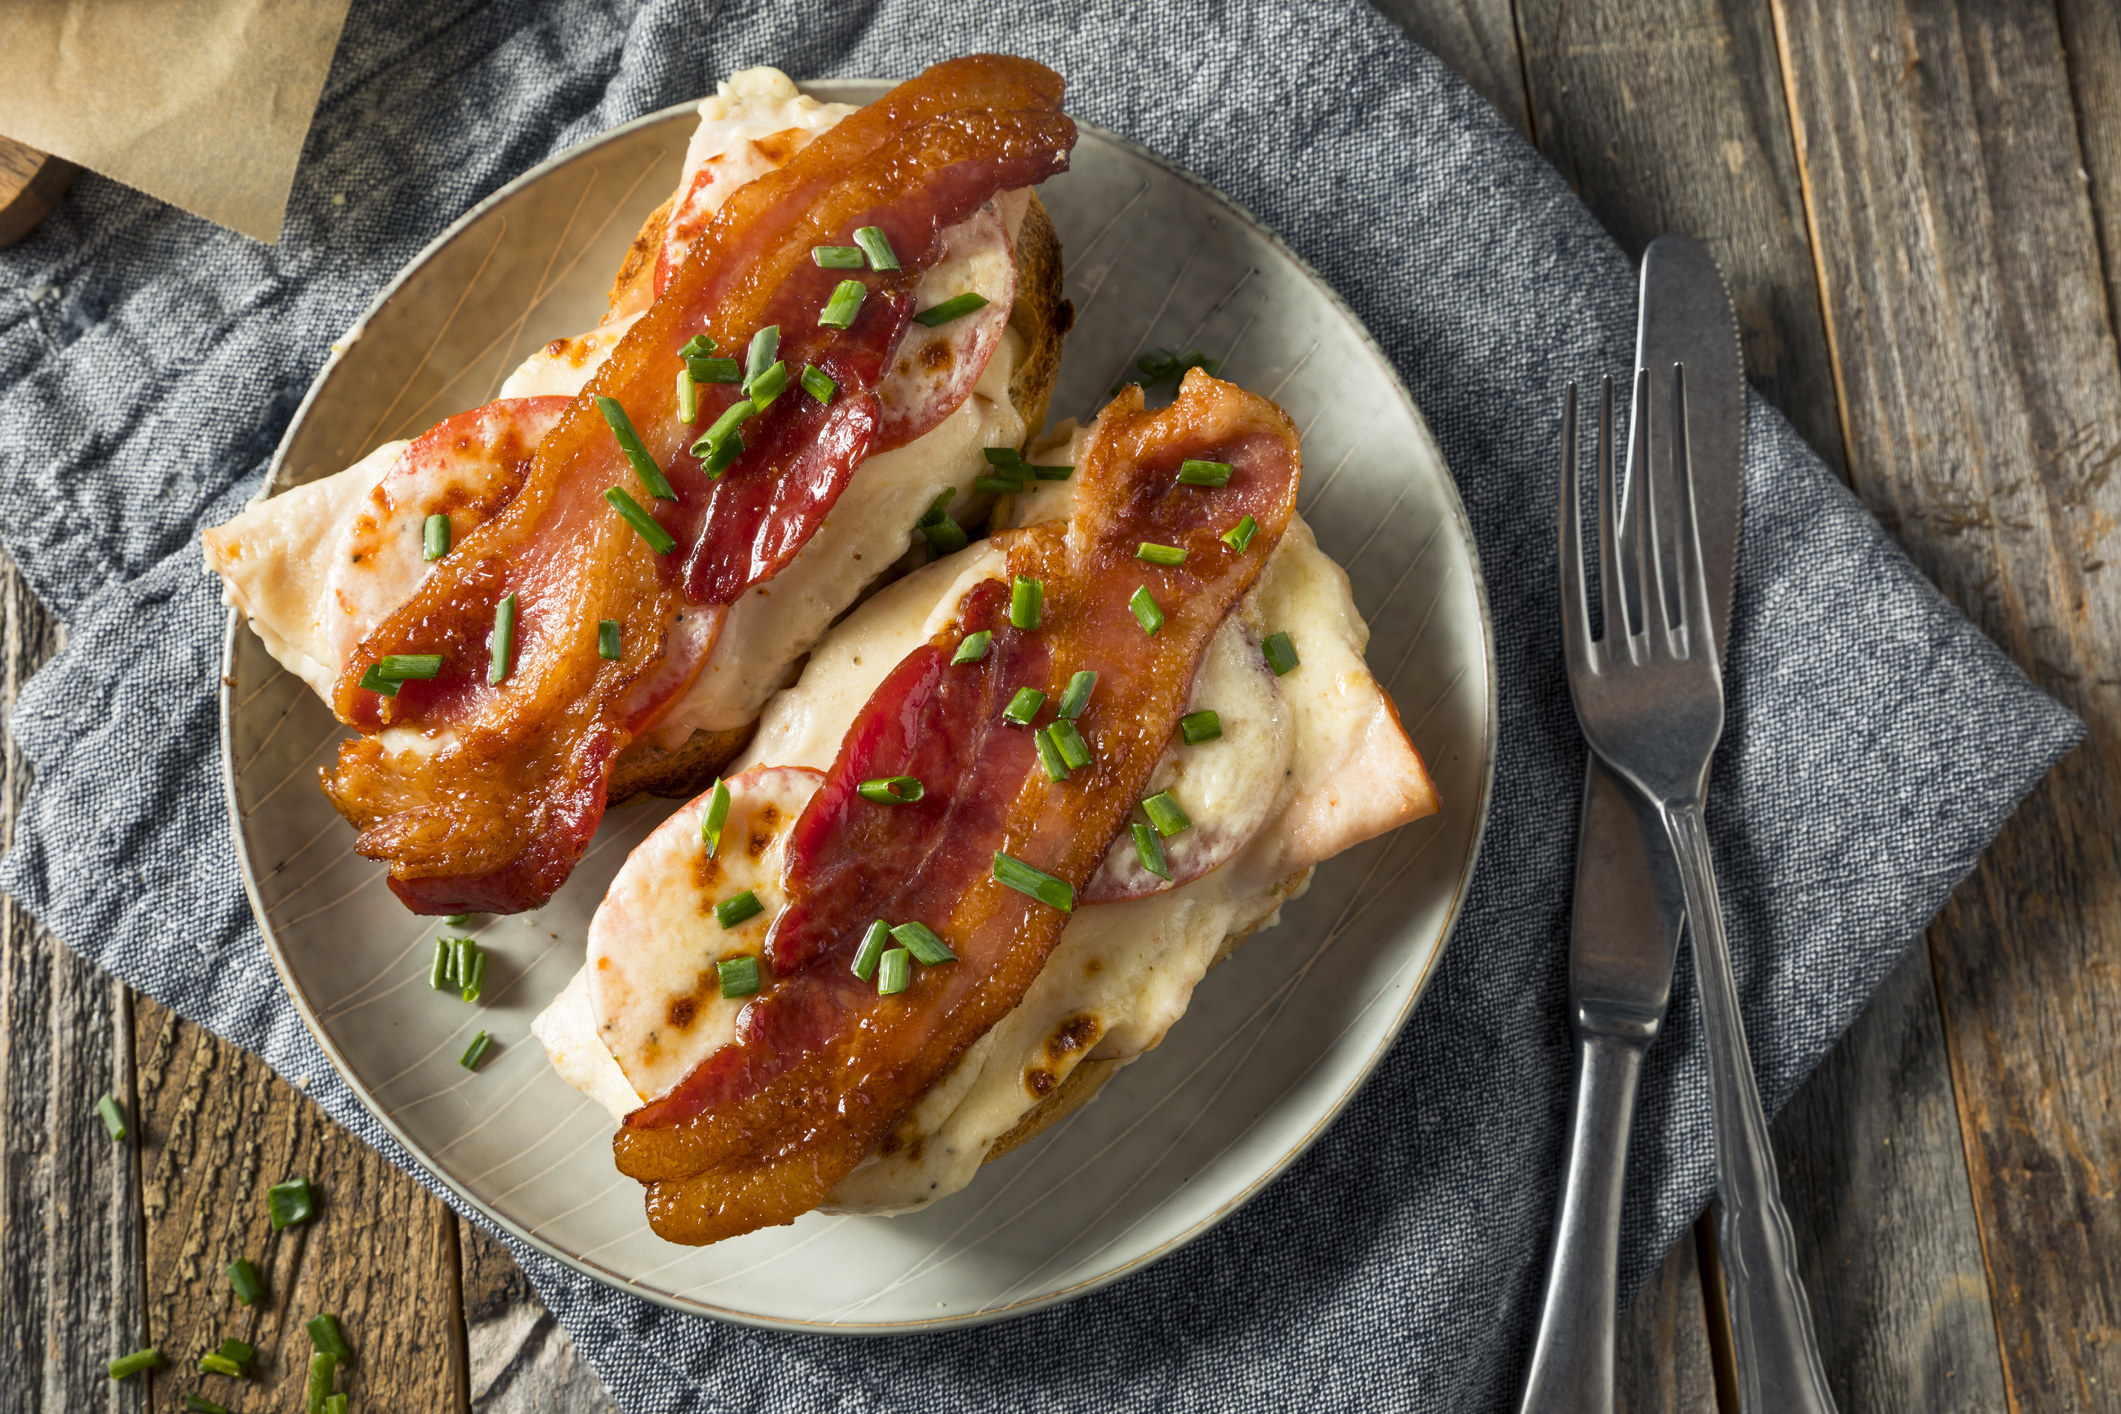 A Kentucky hot brown topped with bacon.